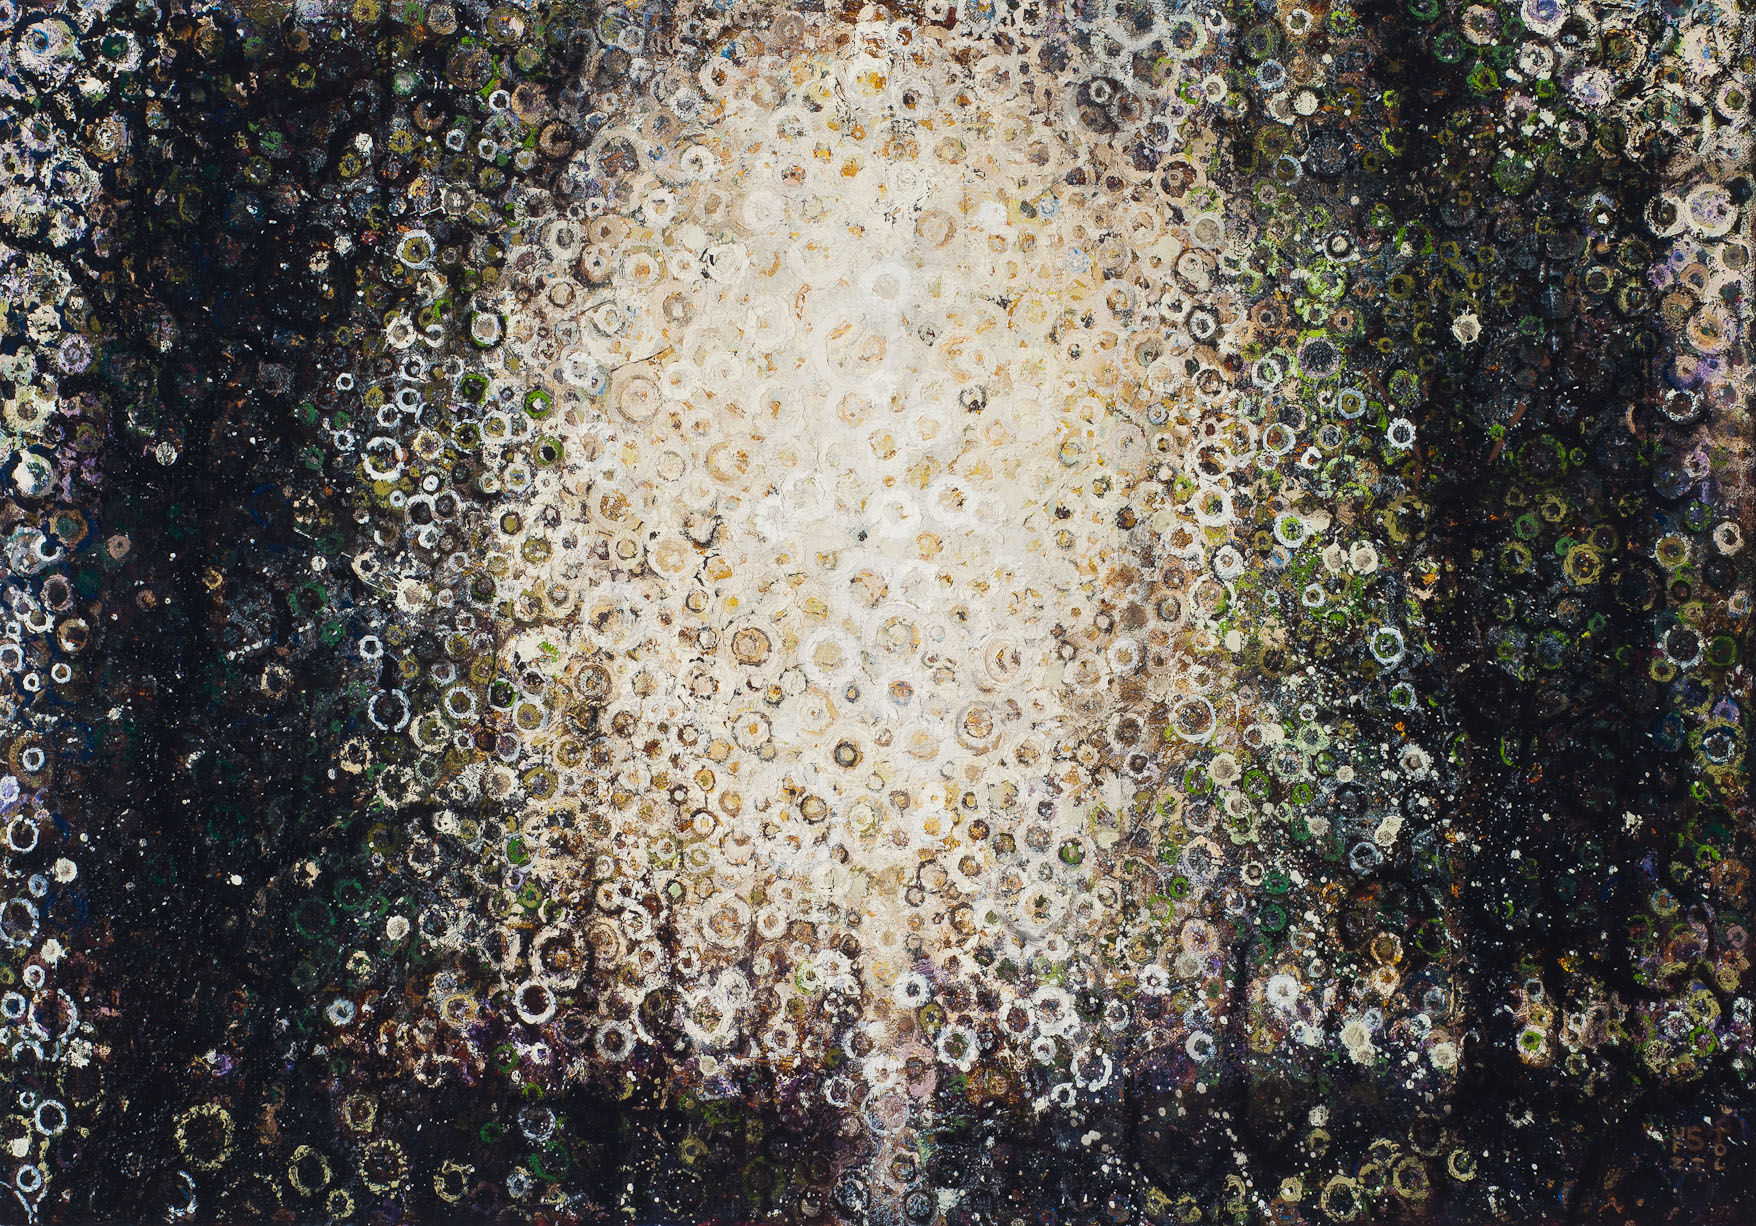 """""""Scarab"""" by Randall Stoltzfus, 2012, oil on linen, 21x 30 inches"""